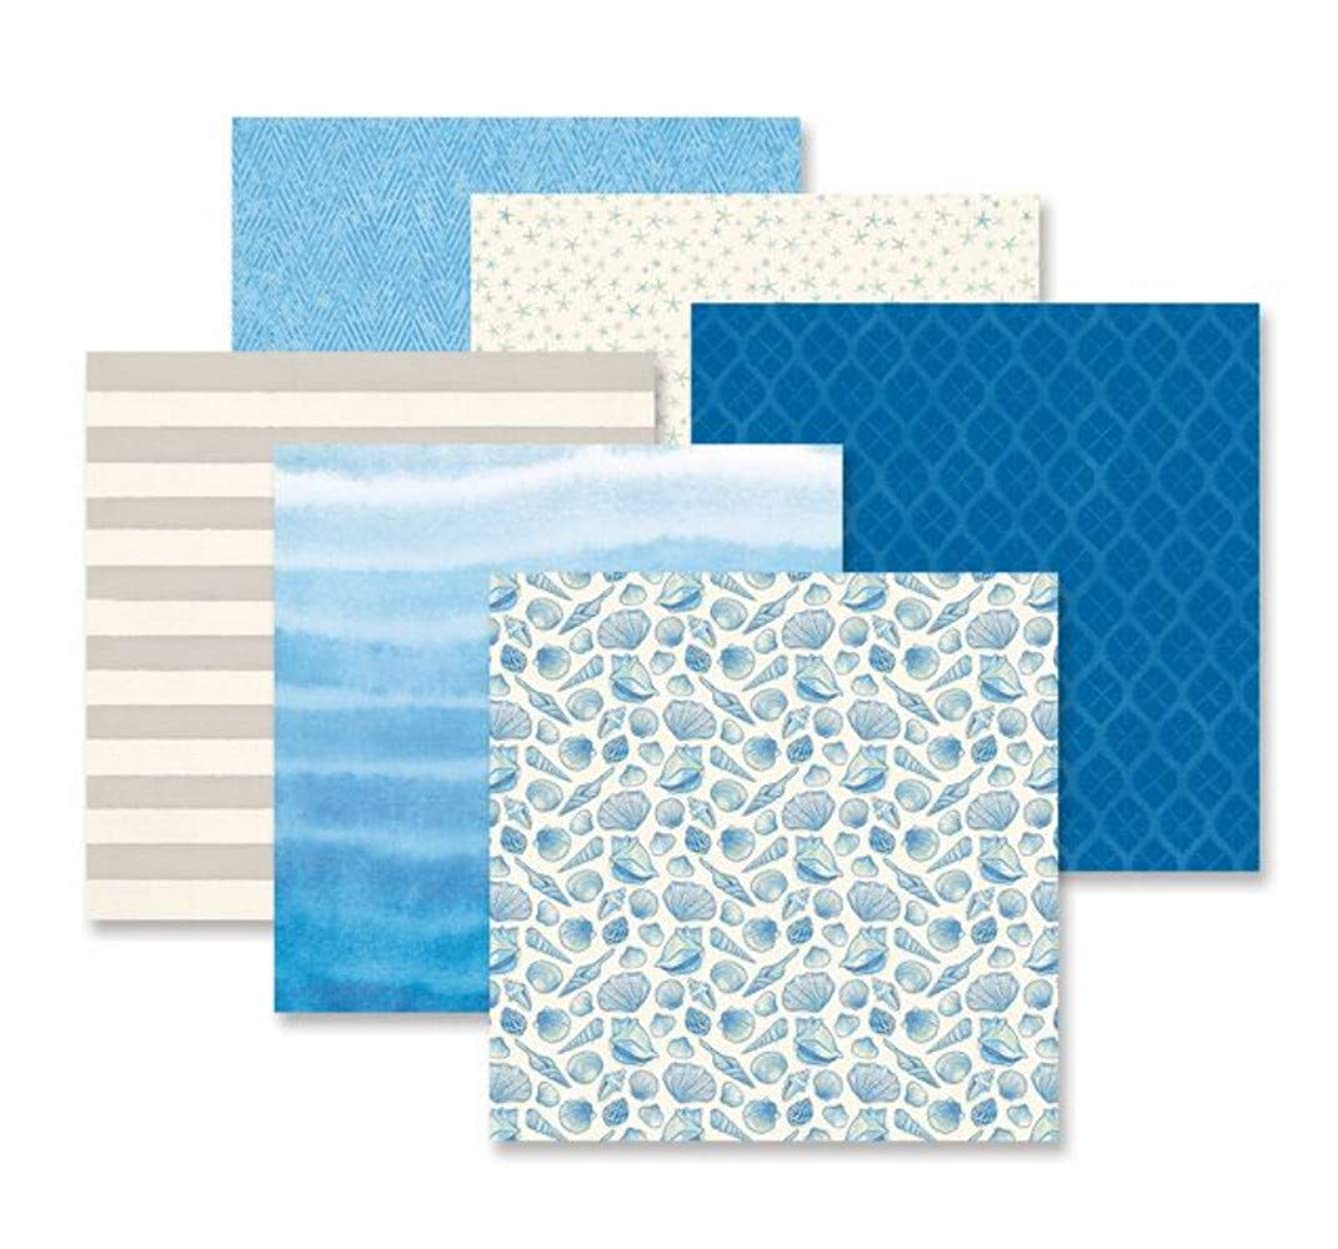 Deep Blue Sea Designer Scrapbook Coastal Paper Pack (12/pk) by Creative Memories